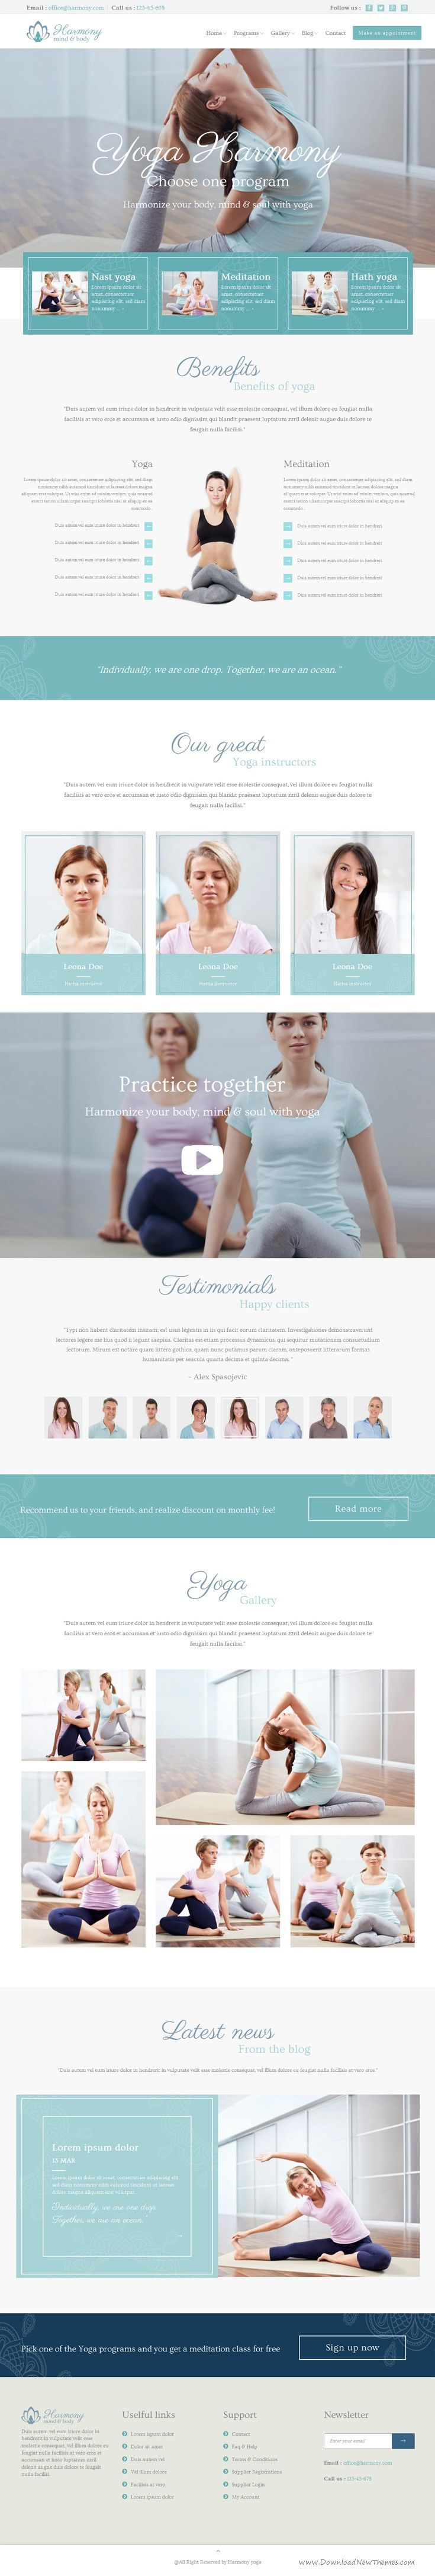 Harmony Yoga Spa Html Template | Purpose, Spa and Template